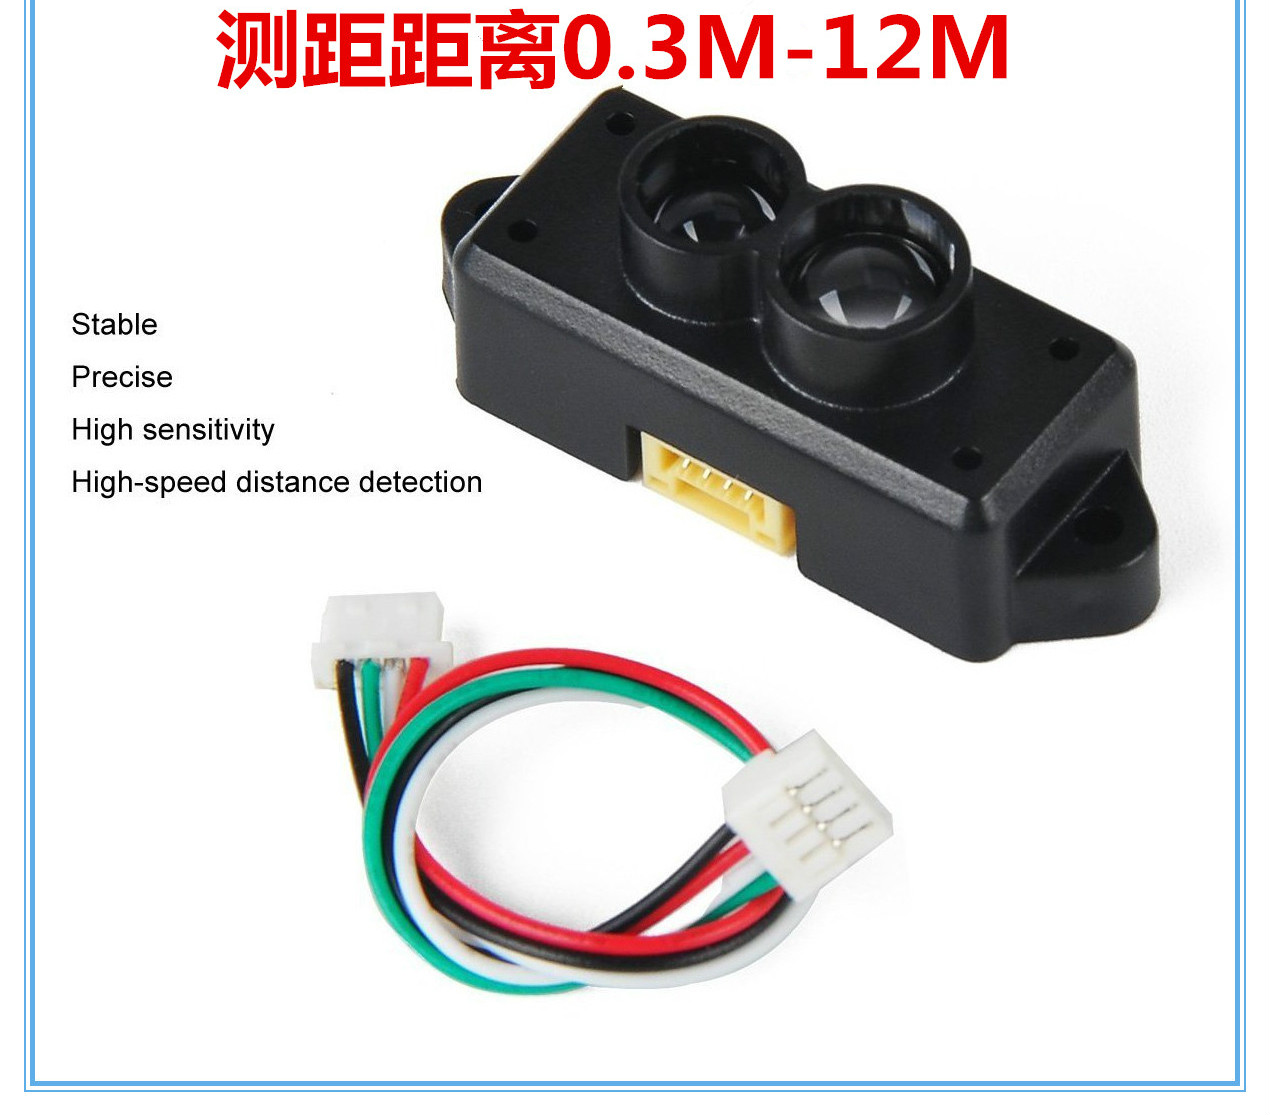 Laser Ranging Sensor, Single Point Laser Radar Ranging Sensor Module, the Distance Can Reach 12M m12 laser on the photoelectric switch can see the red super long distance laser sensor npn normally open